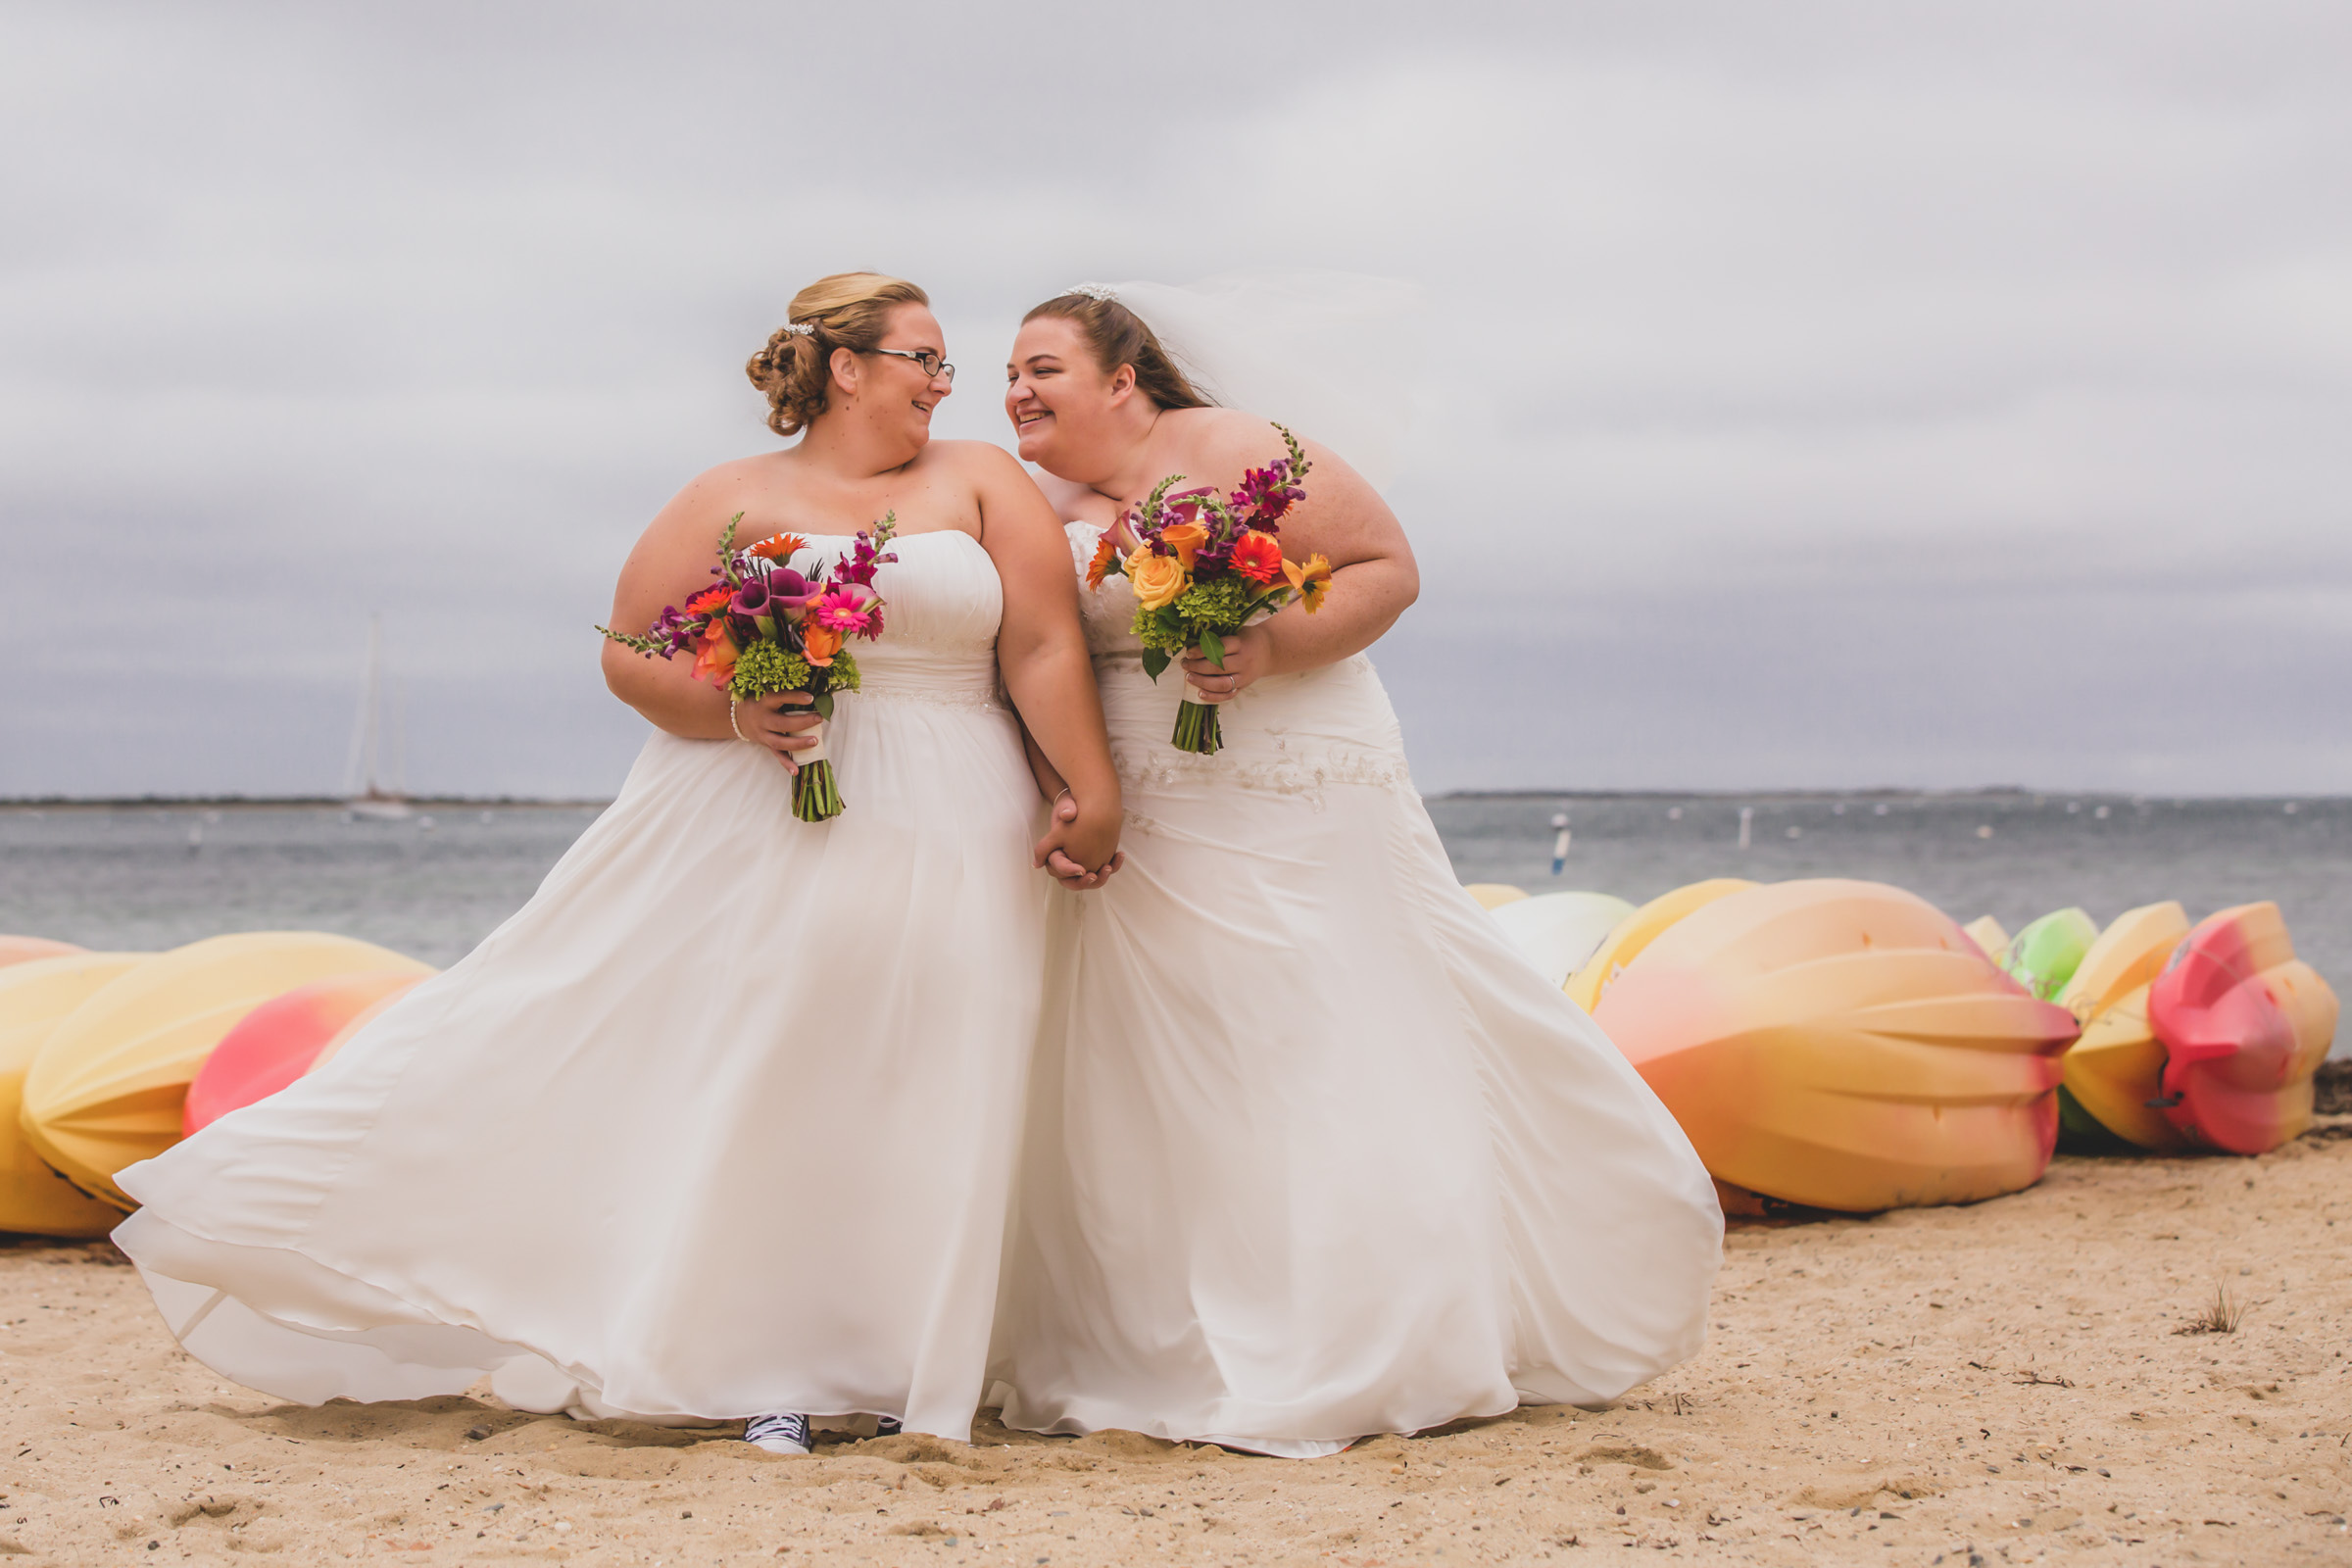 Brides on beach with bright bouquets - photo by Katie Kaizer Photography